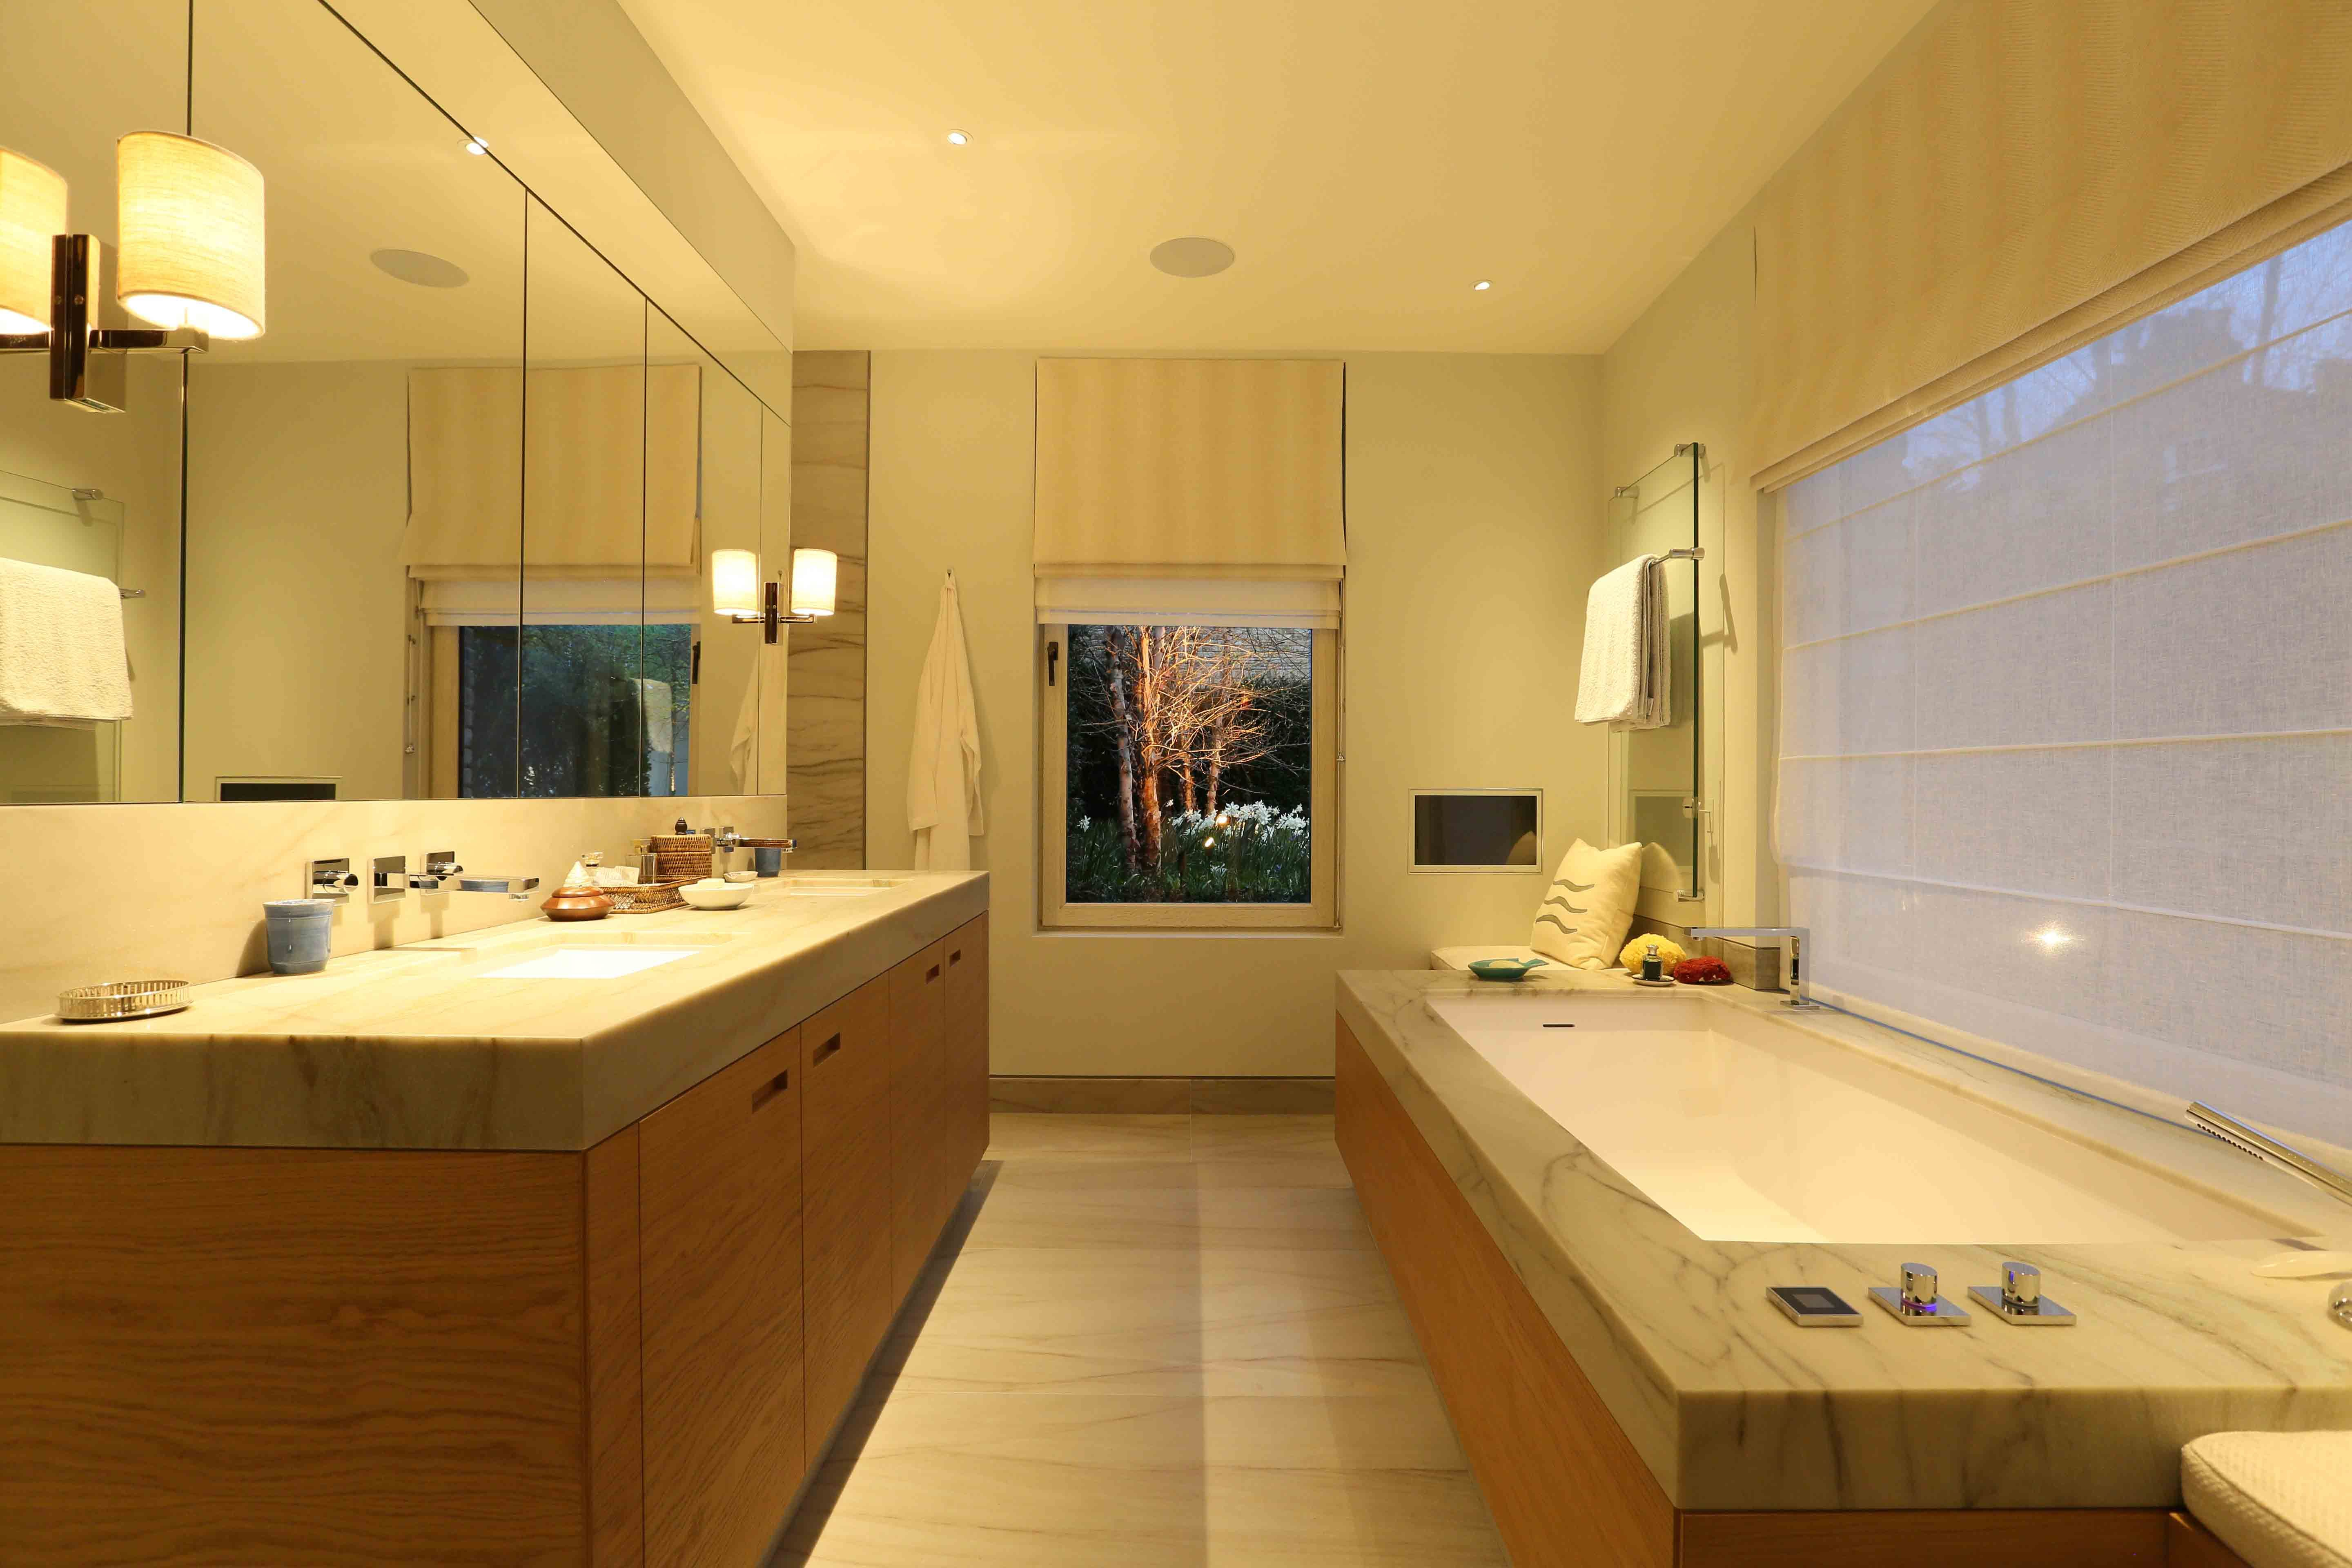 inspirational bathroom lighting ideas. Creative Director Sally Storey Gives Her Top Inspirational Bathroom Lighting Tips And Ideas Along With Products On How To Achieve The Best